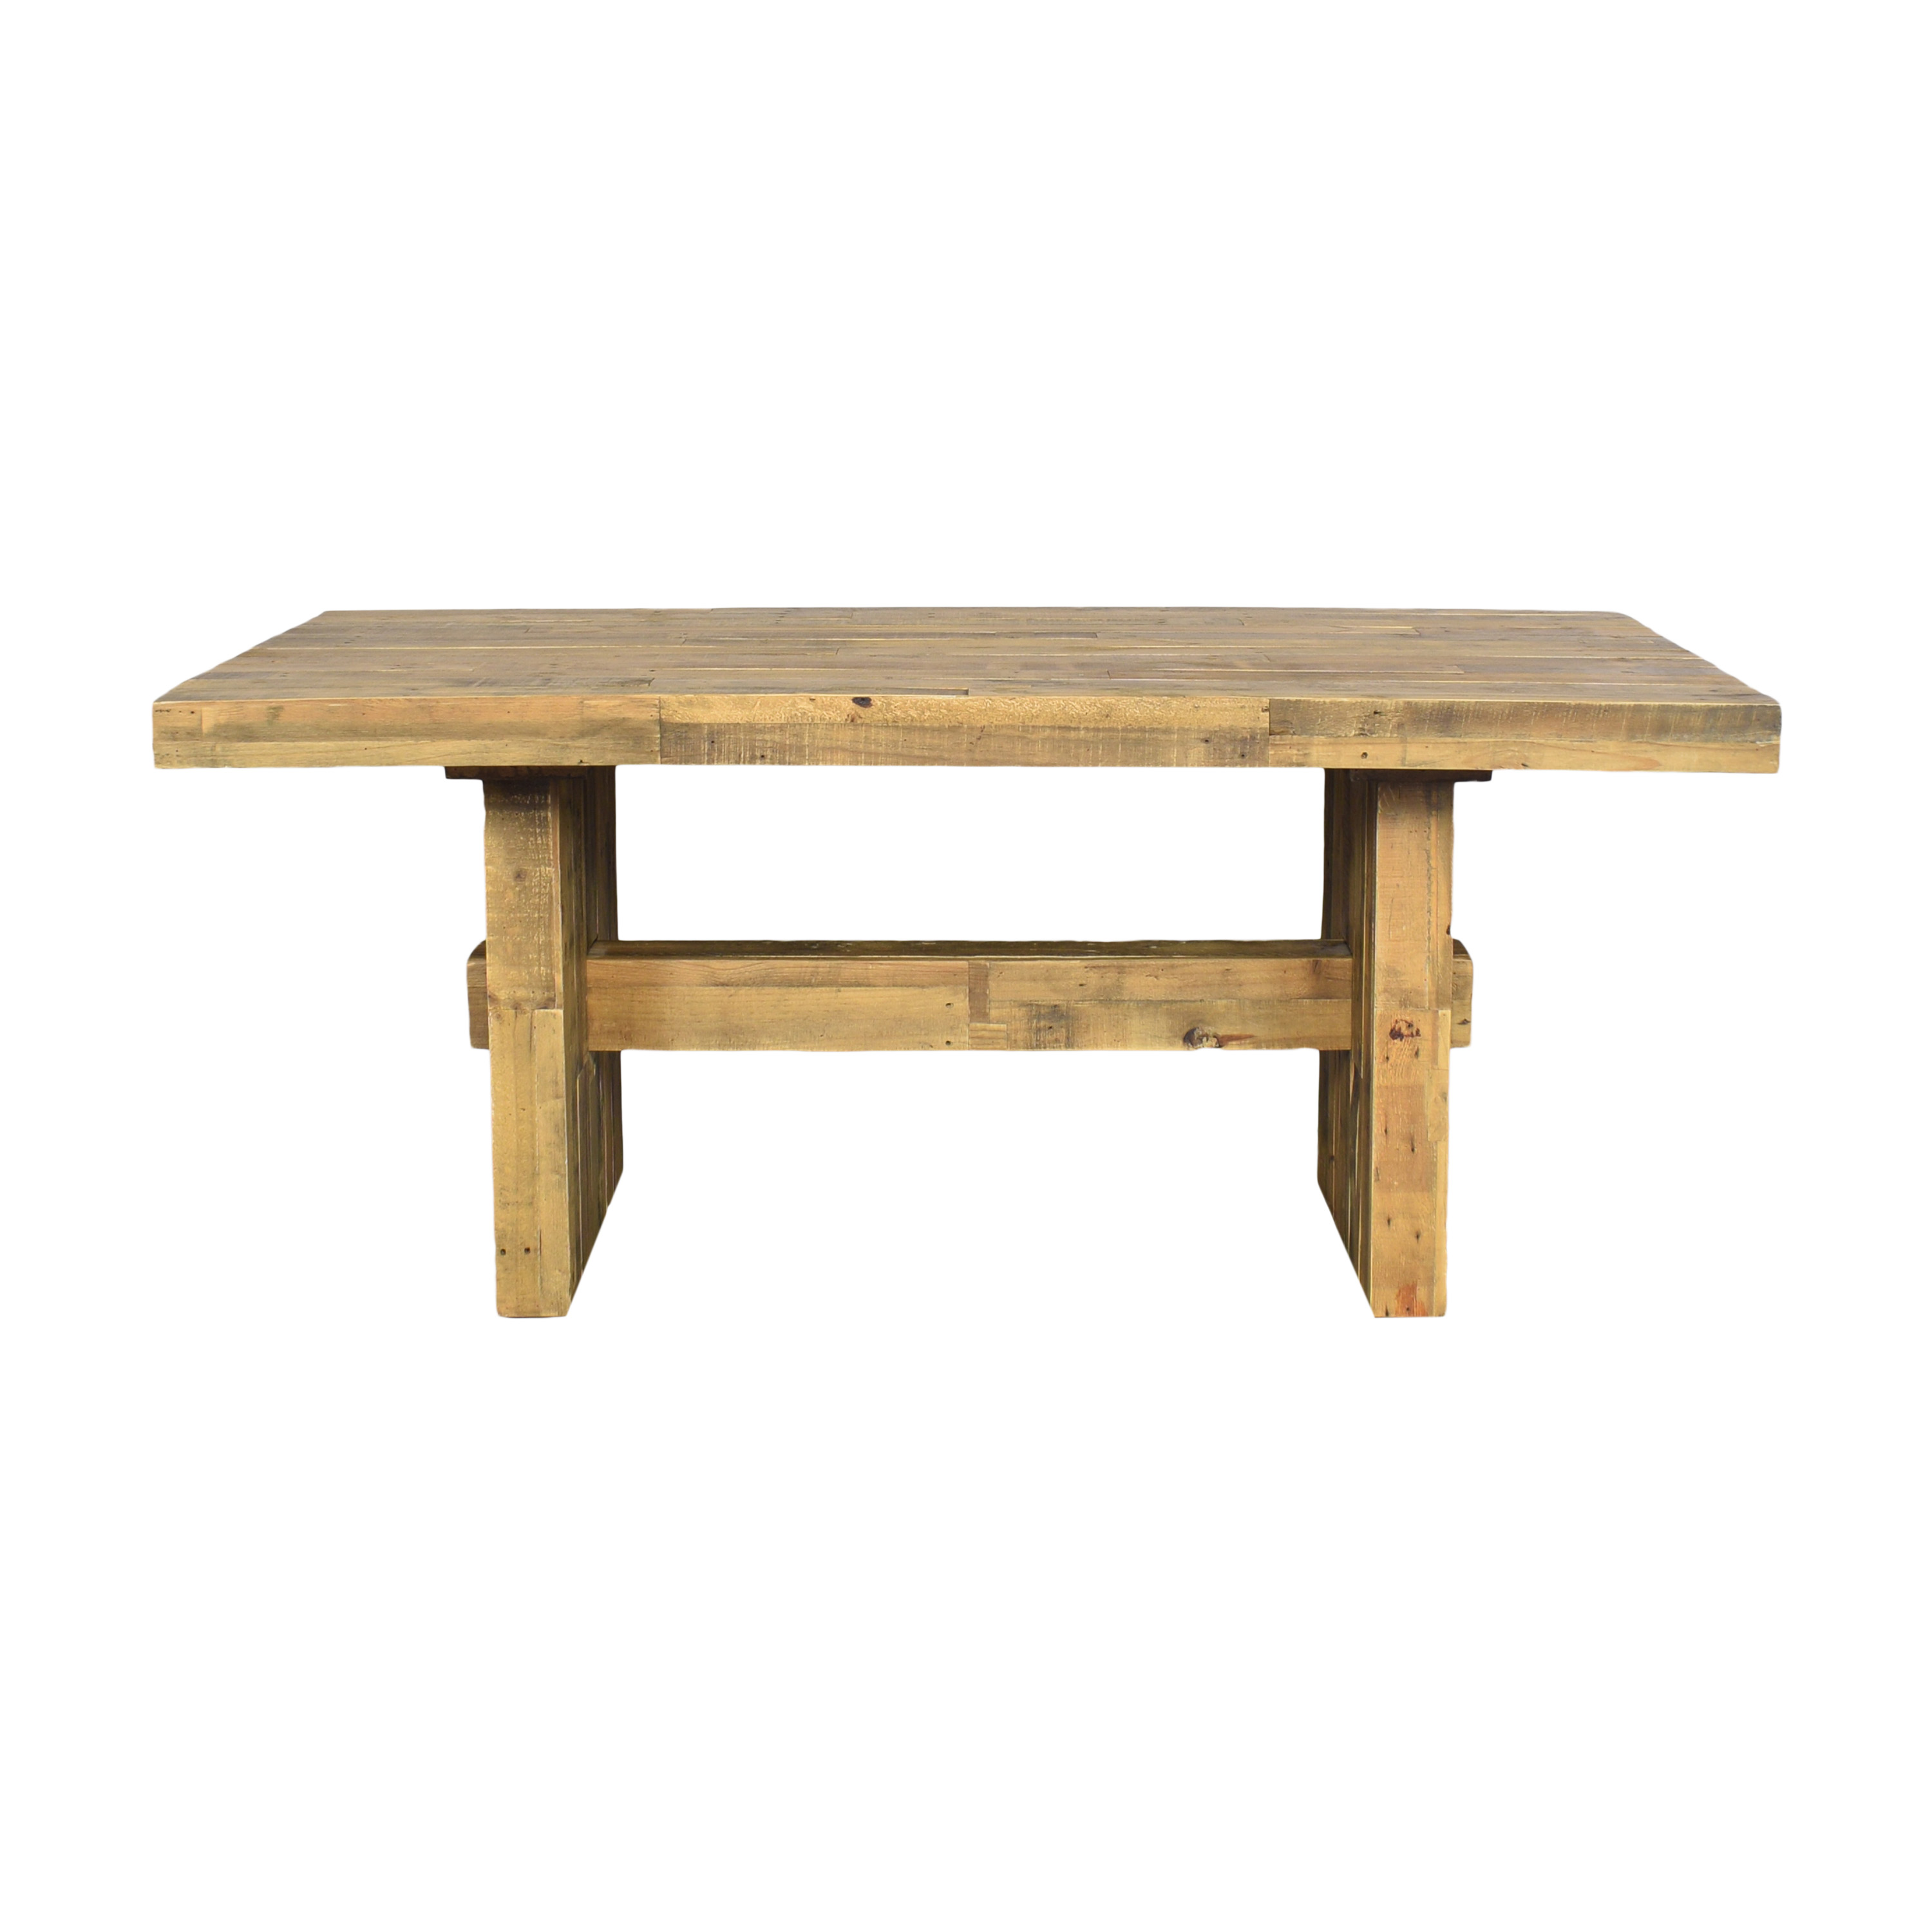 West Elm West Elm Emmerson Reclaimed Dining Table coupon